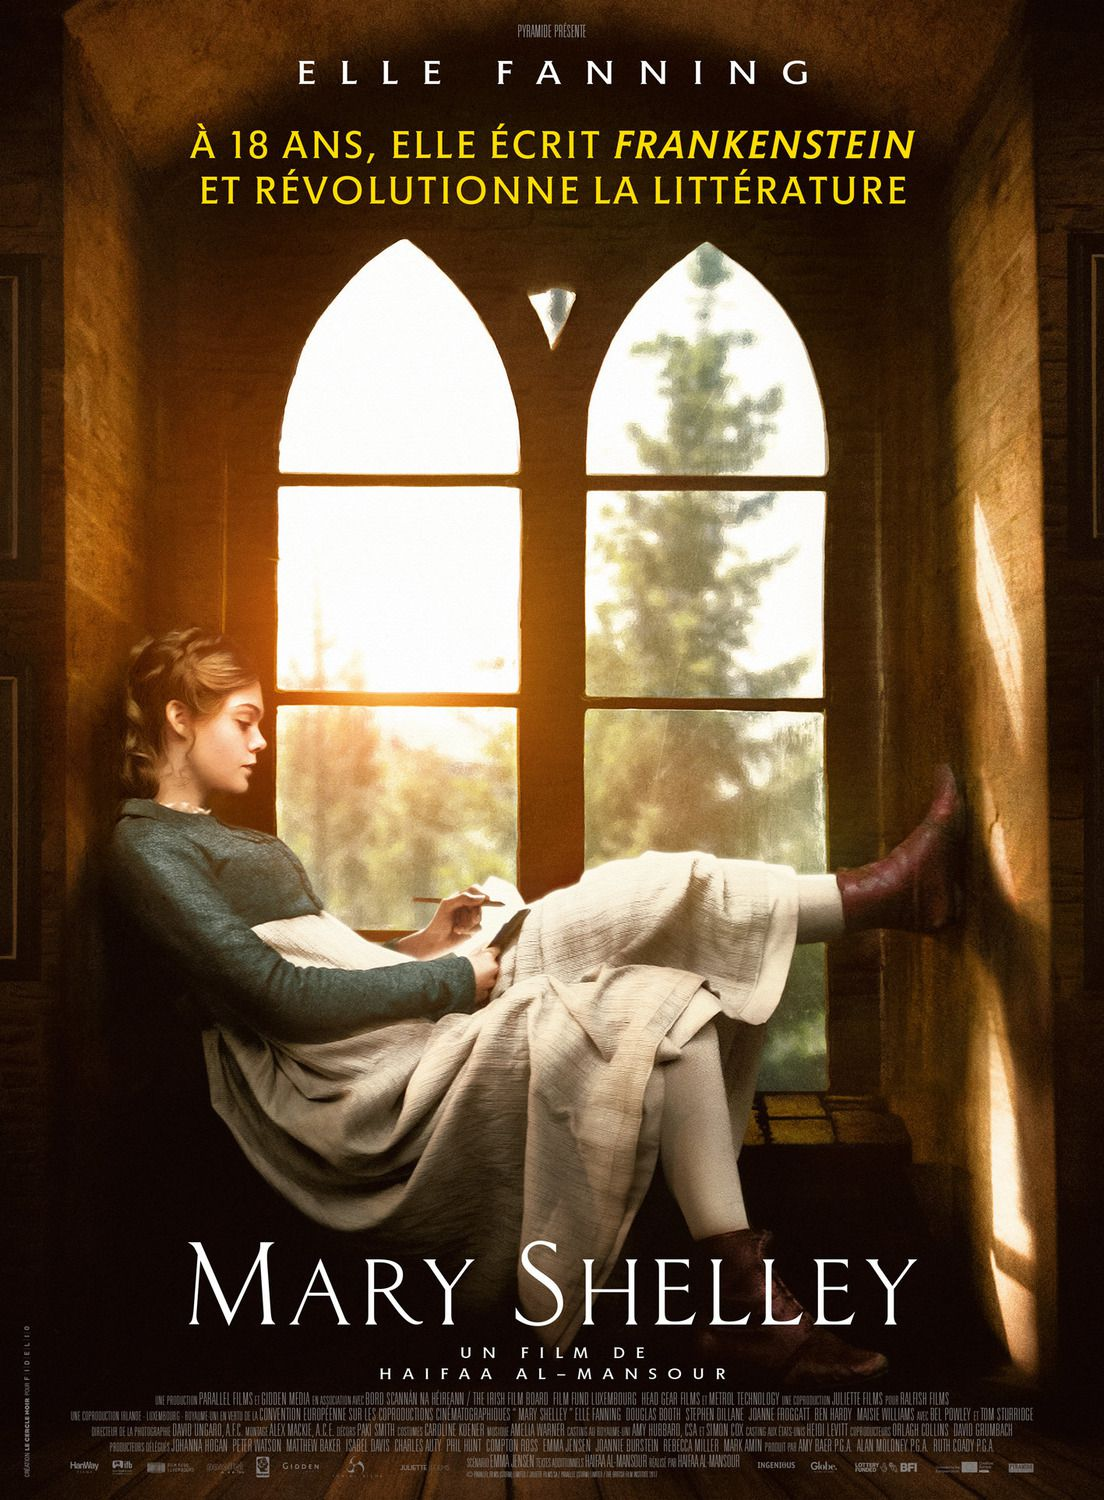 Mary Shelley 2018 Elle Fanning, Douglas Booth, Bel Powley, Maisie Williams - film poster